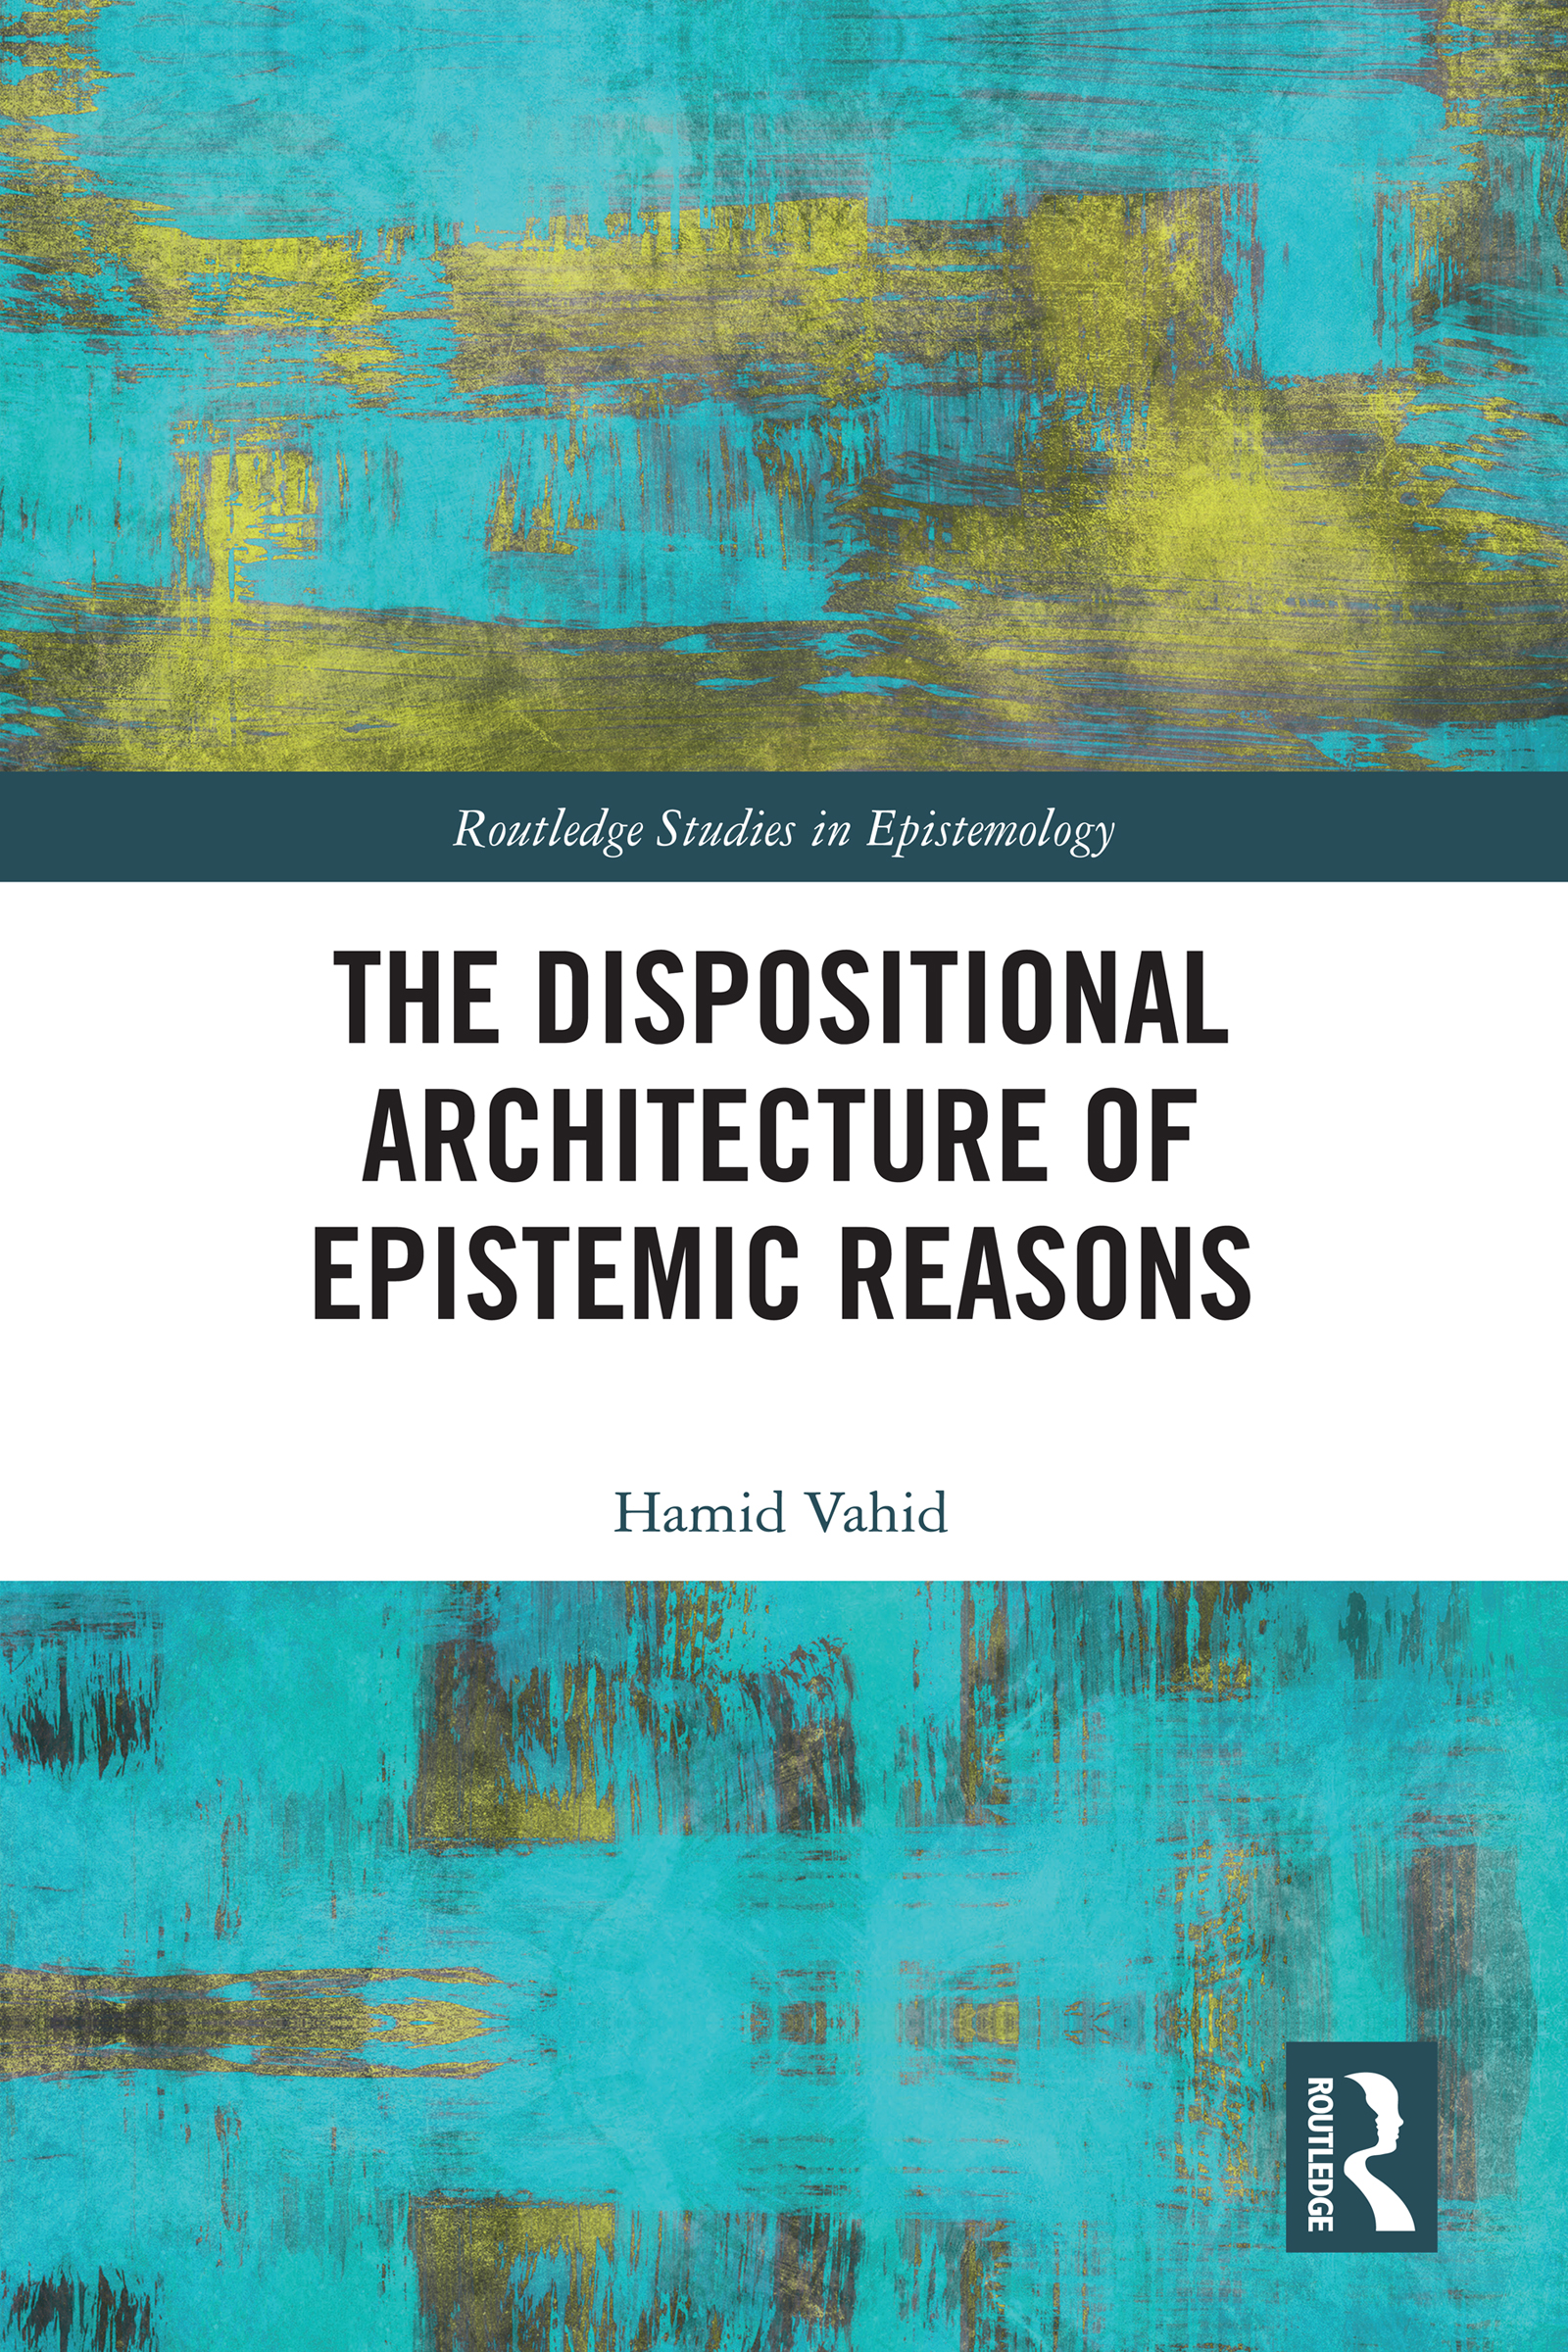 The Dispositional Architecture of Epistemic Reasons